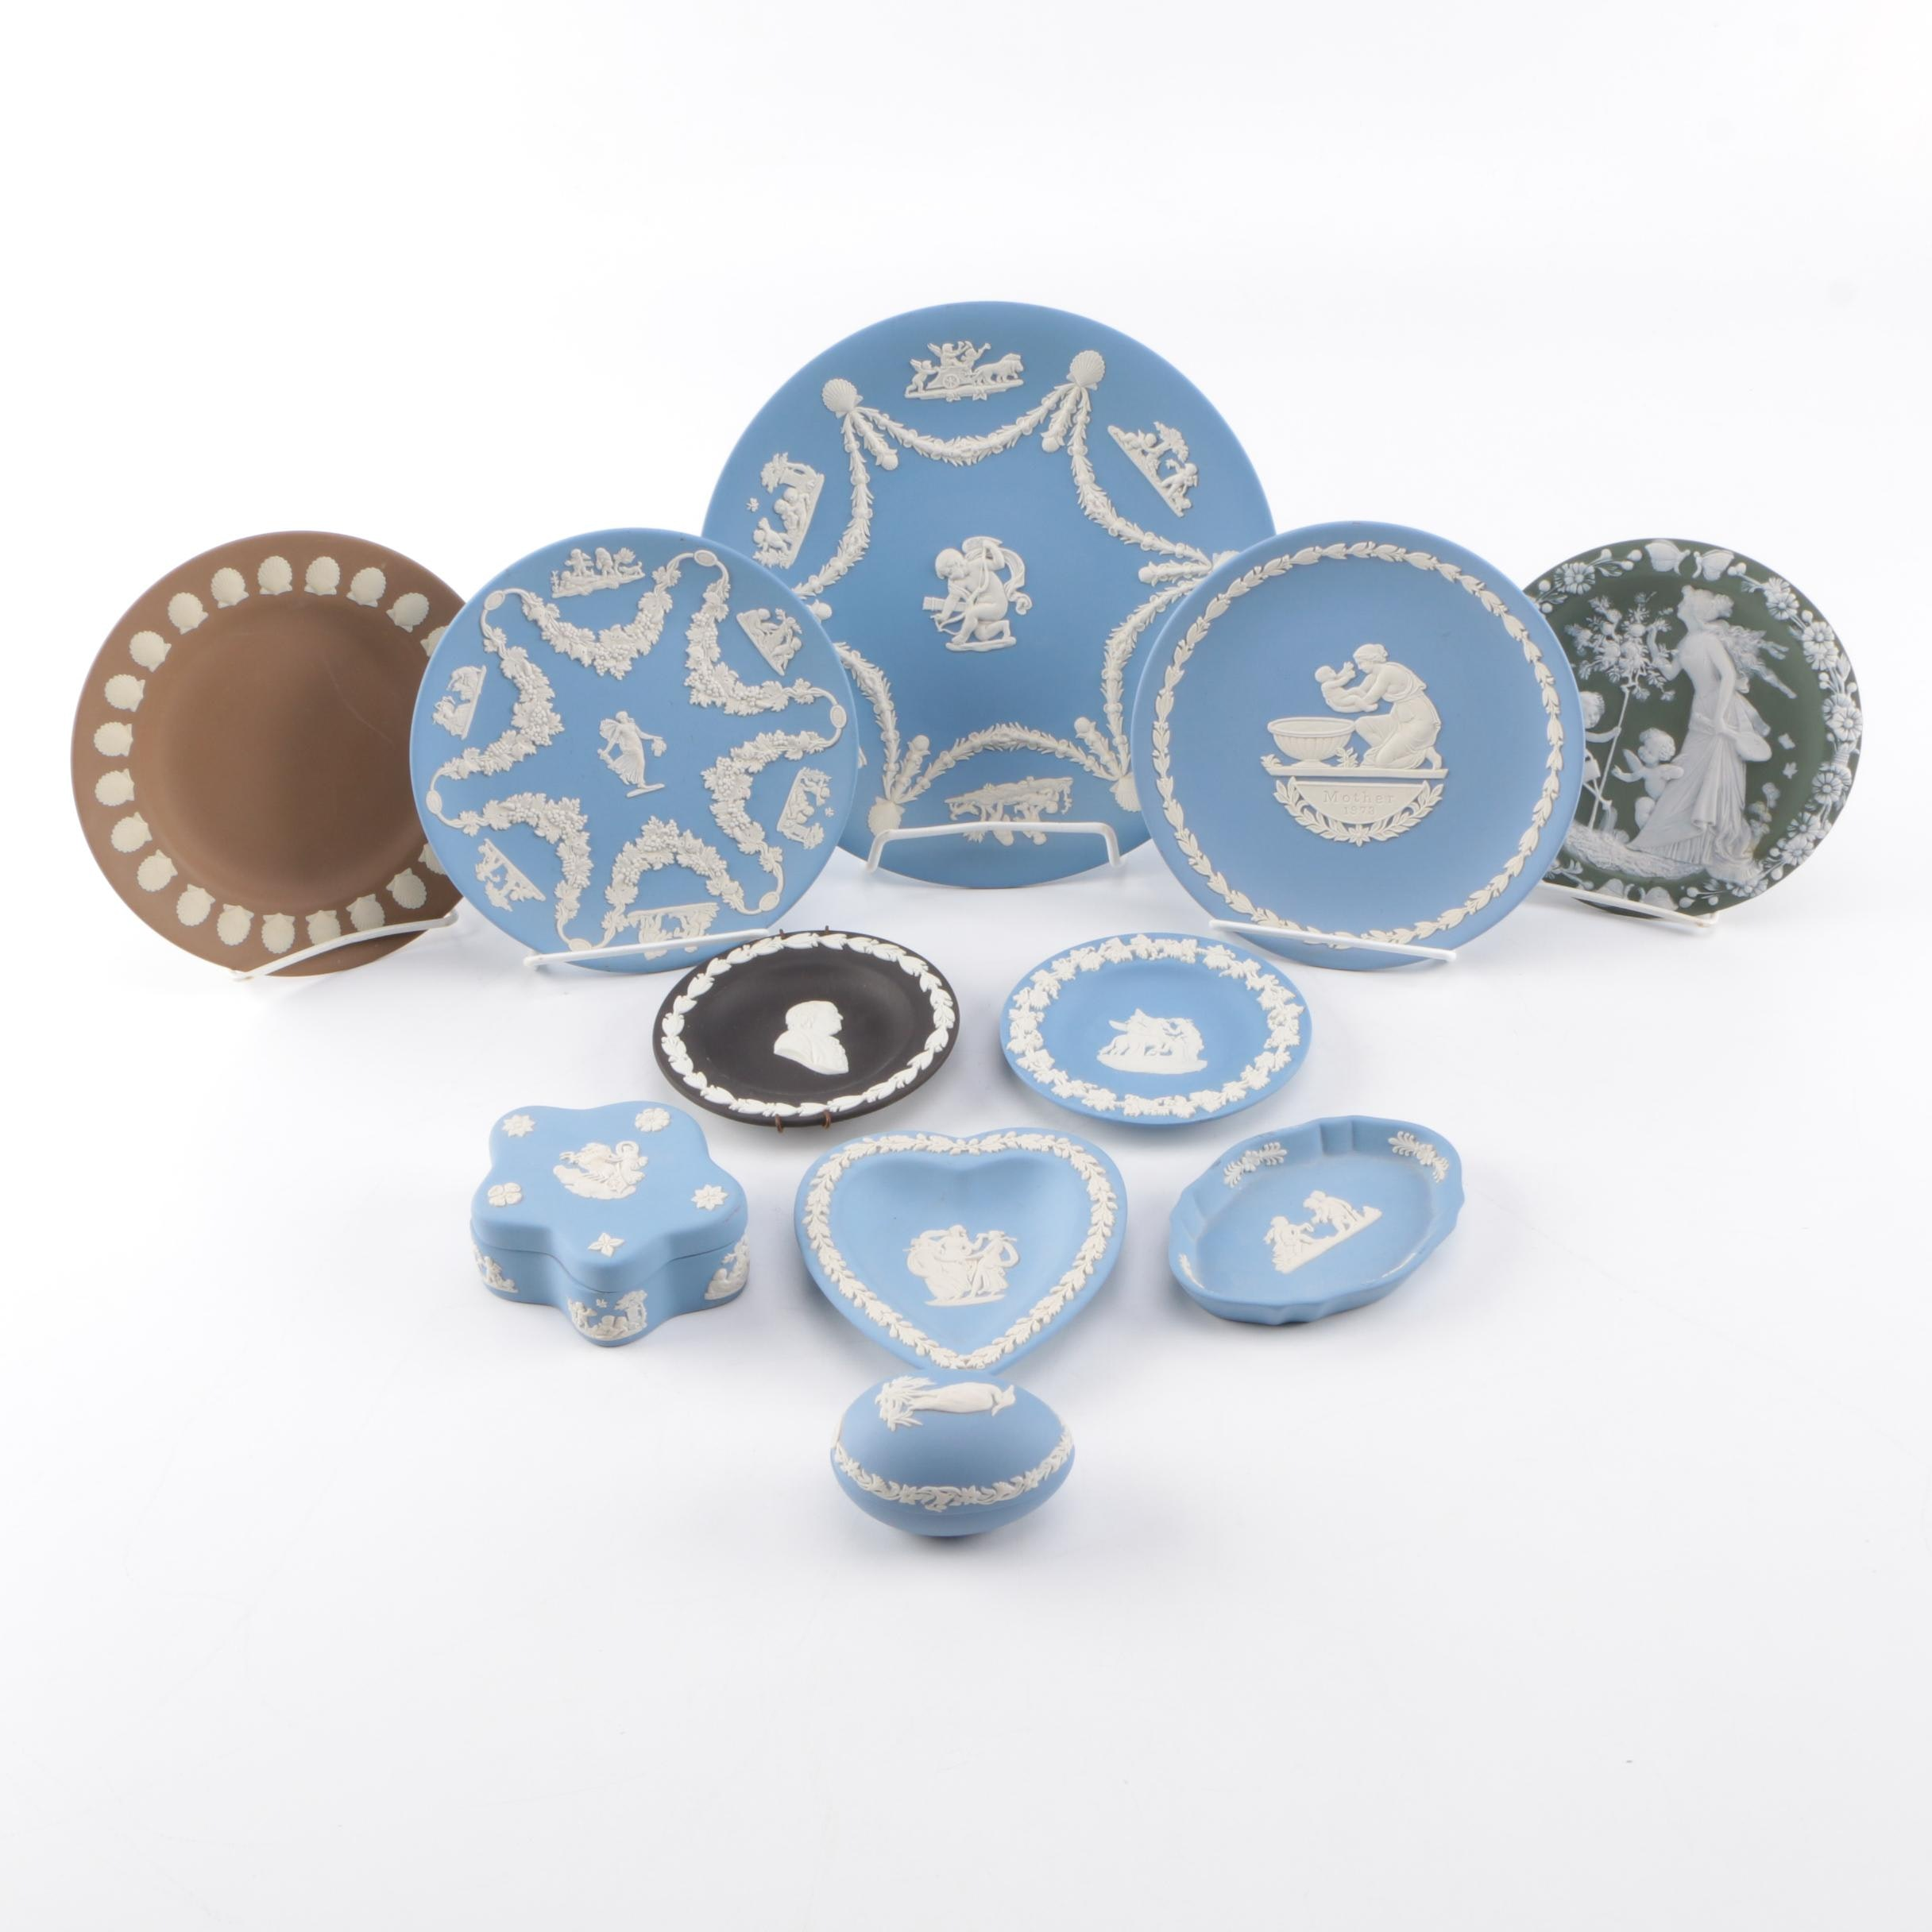 Wedgwood Jasperware Plates and Other Decor